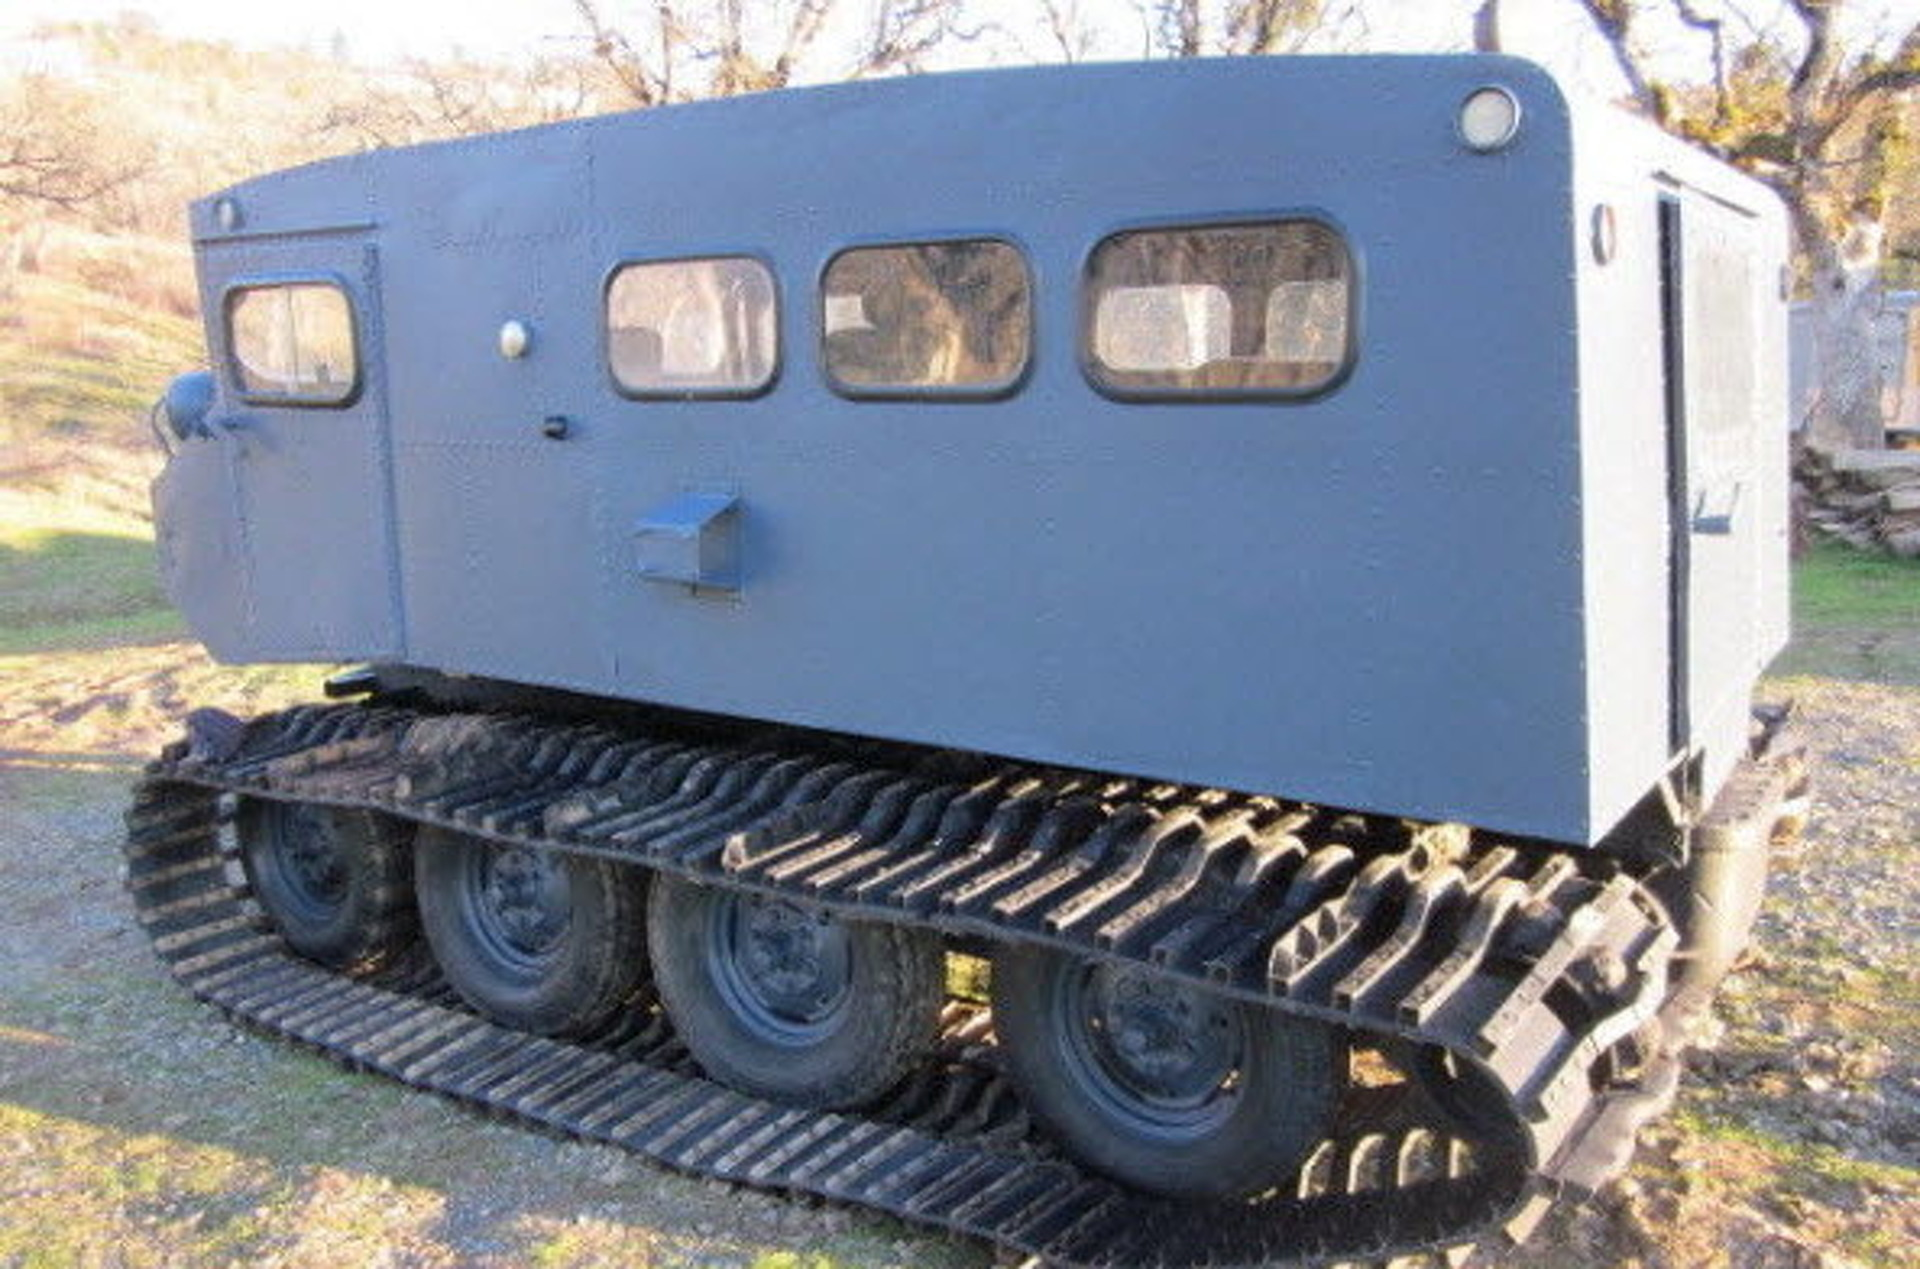 Auction Car of the Week: 1967 Thiokol Snowcat